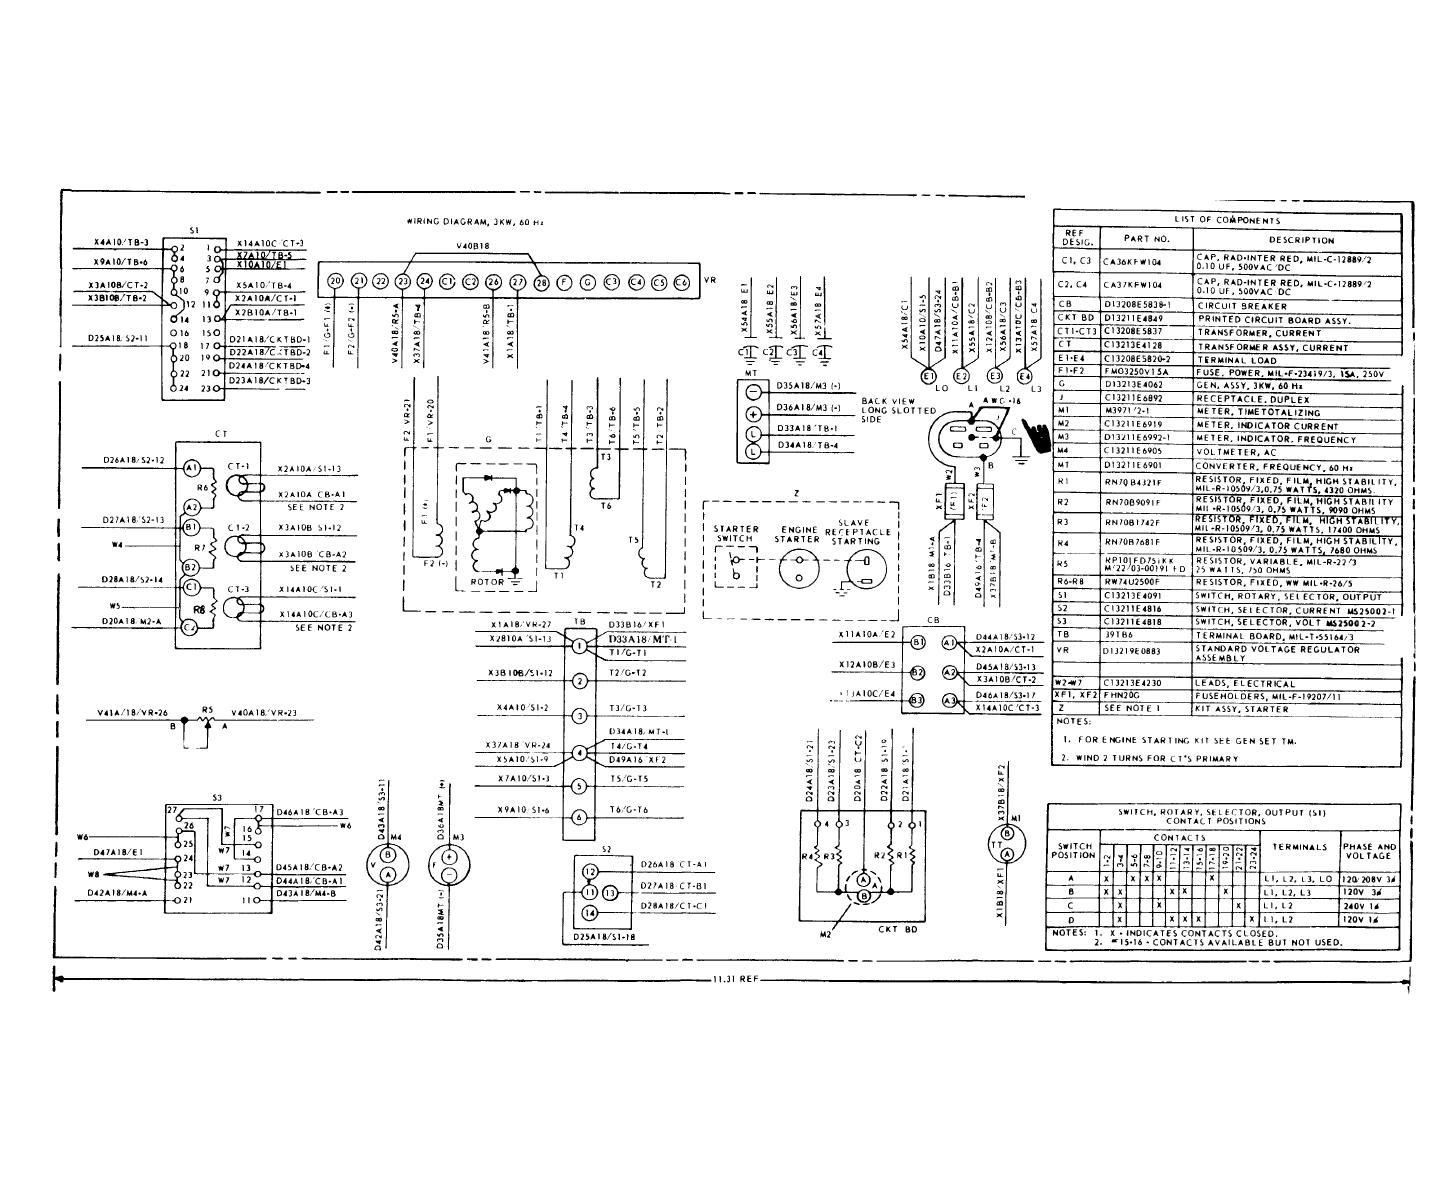 Figure FO-1 Wiring diagram (Model MEP-016A)